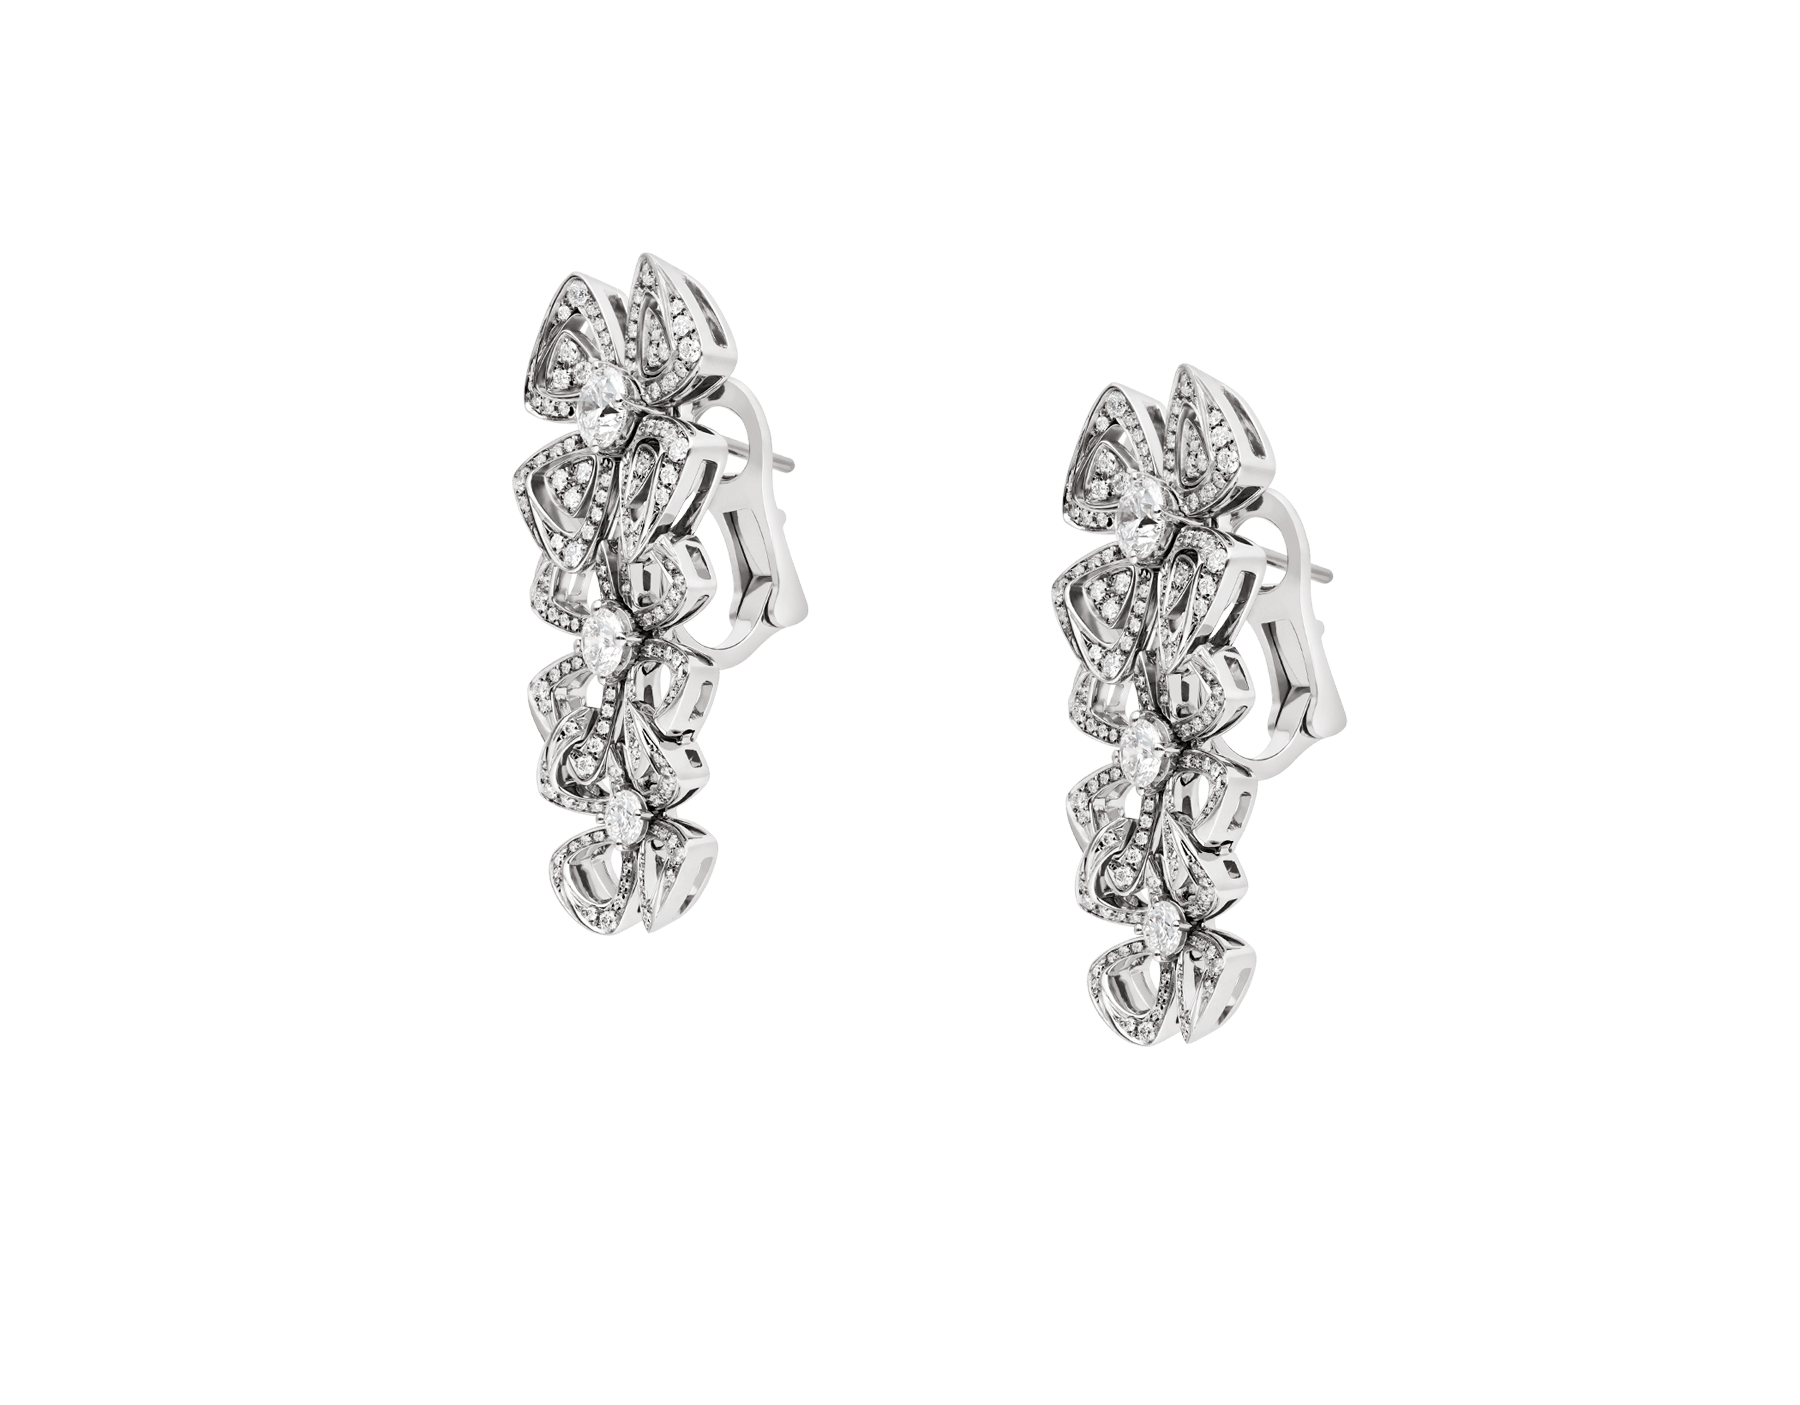 Fiorever 18 kt white gold pendant earring, set with 6 round brilliant-cut diamonds and pavé diamonds. 356911 image 2